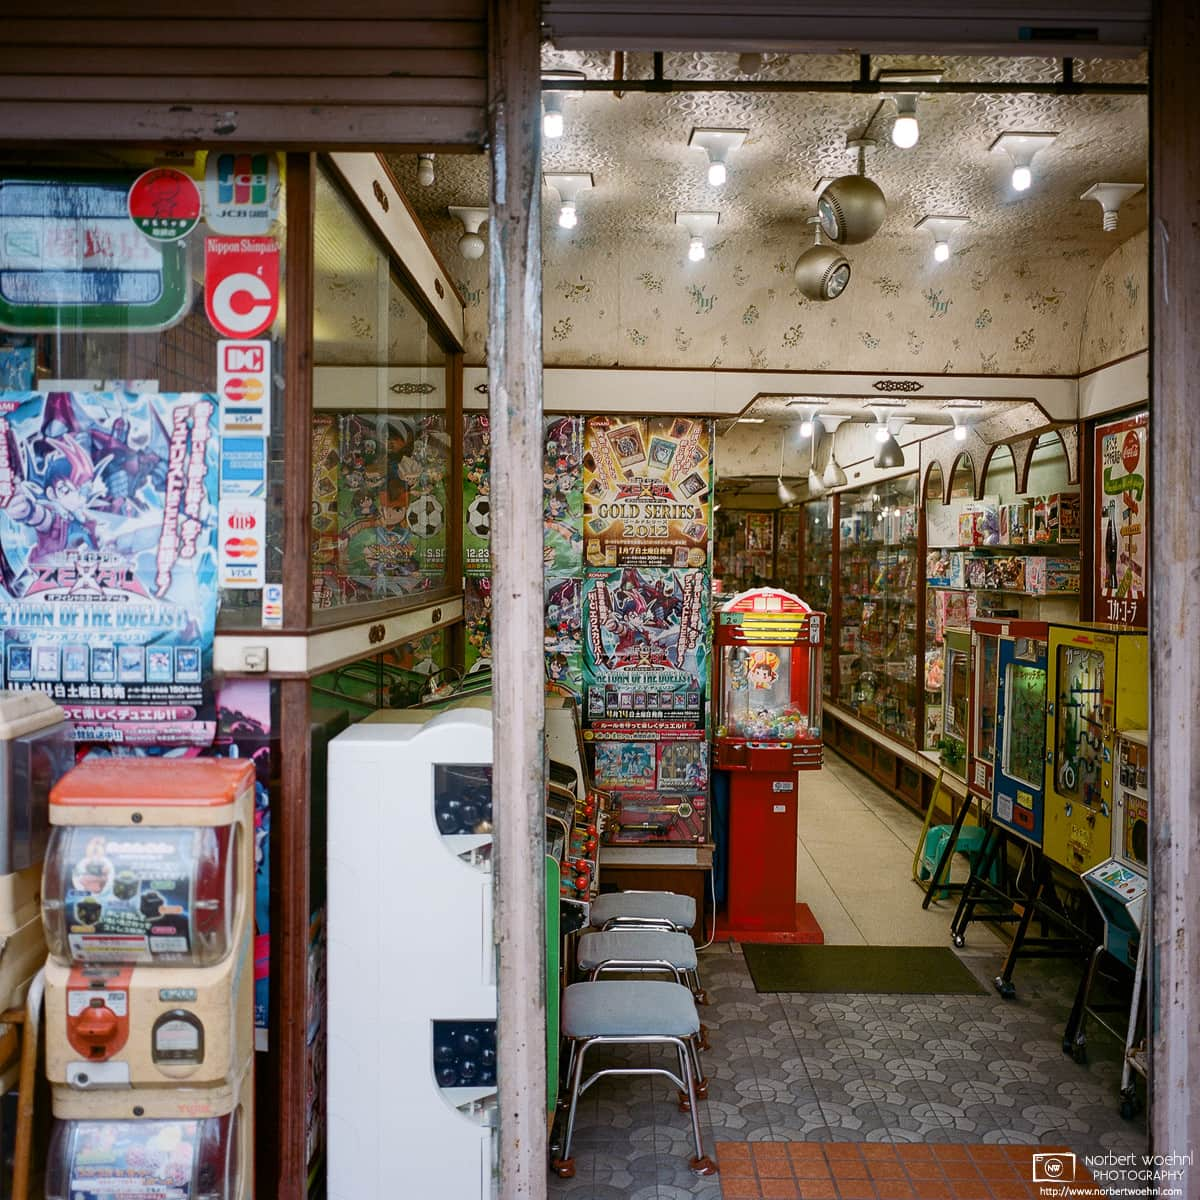 View of the entrance to a vintage games shop and museum in the Nakajuku area of Itabashi-ku, Tokyo, Japan.